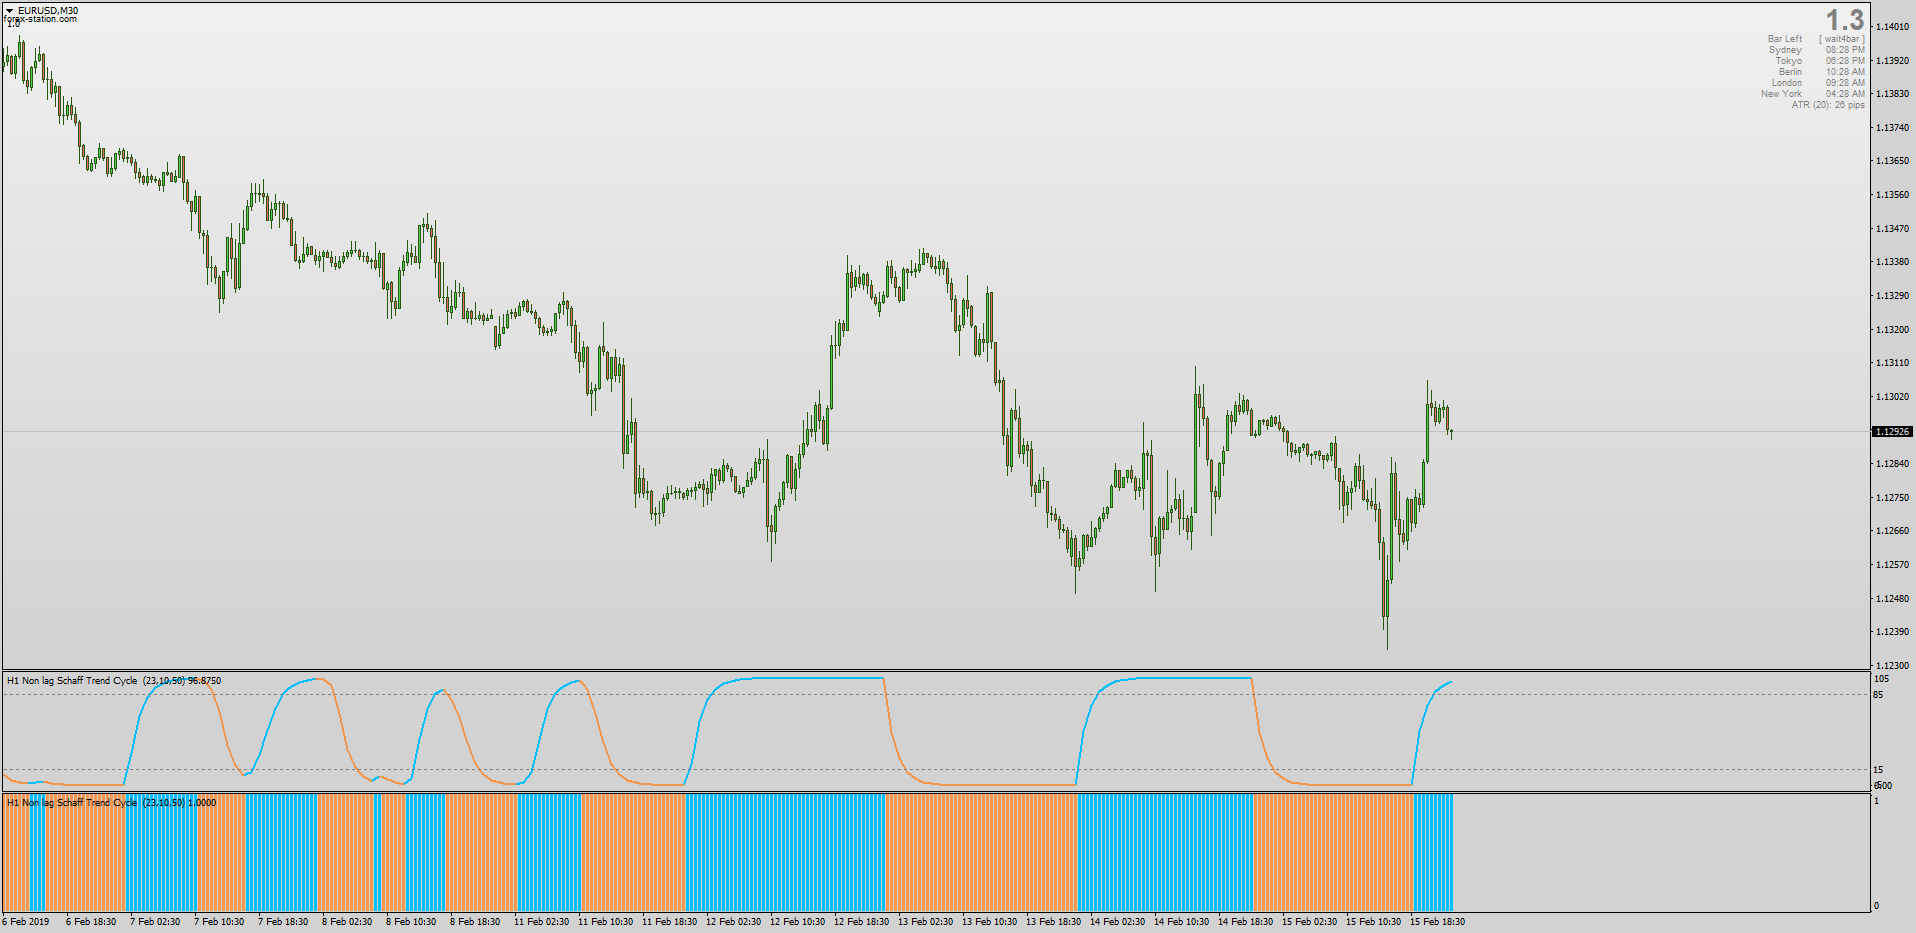 Non Lag Schaff Trend Cycle MACD Histogram MT4.png